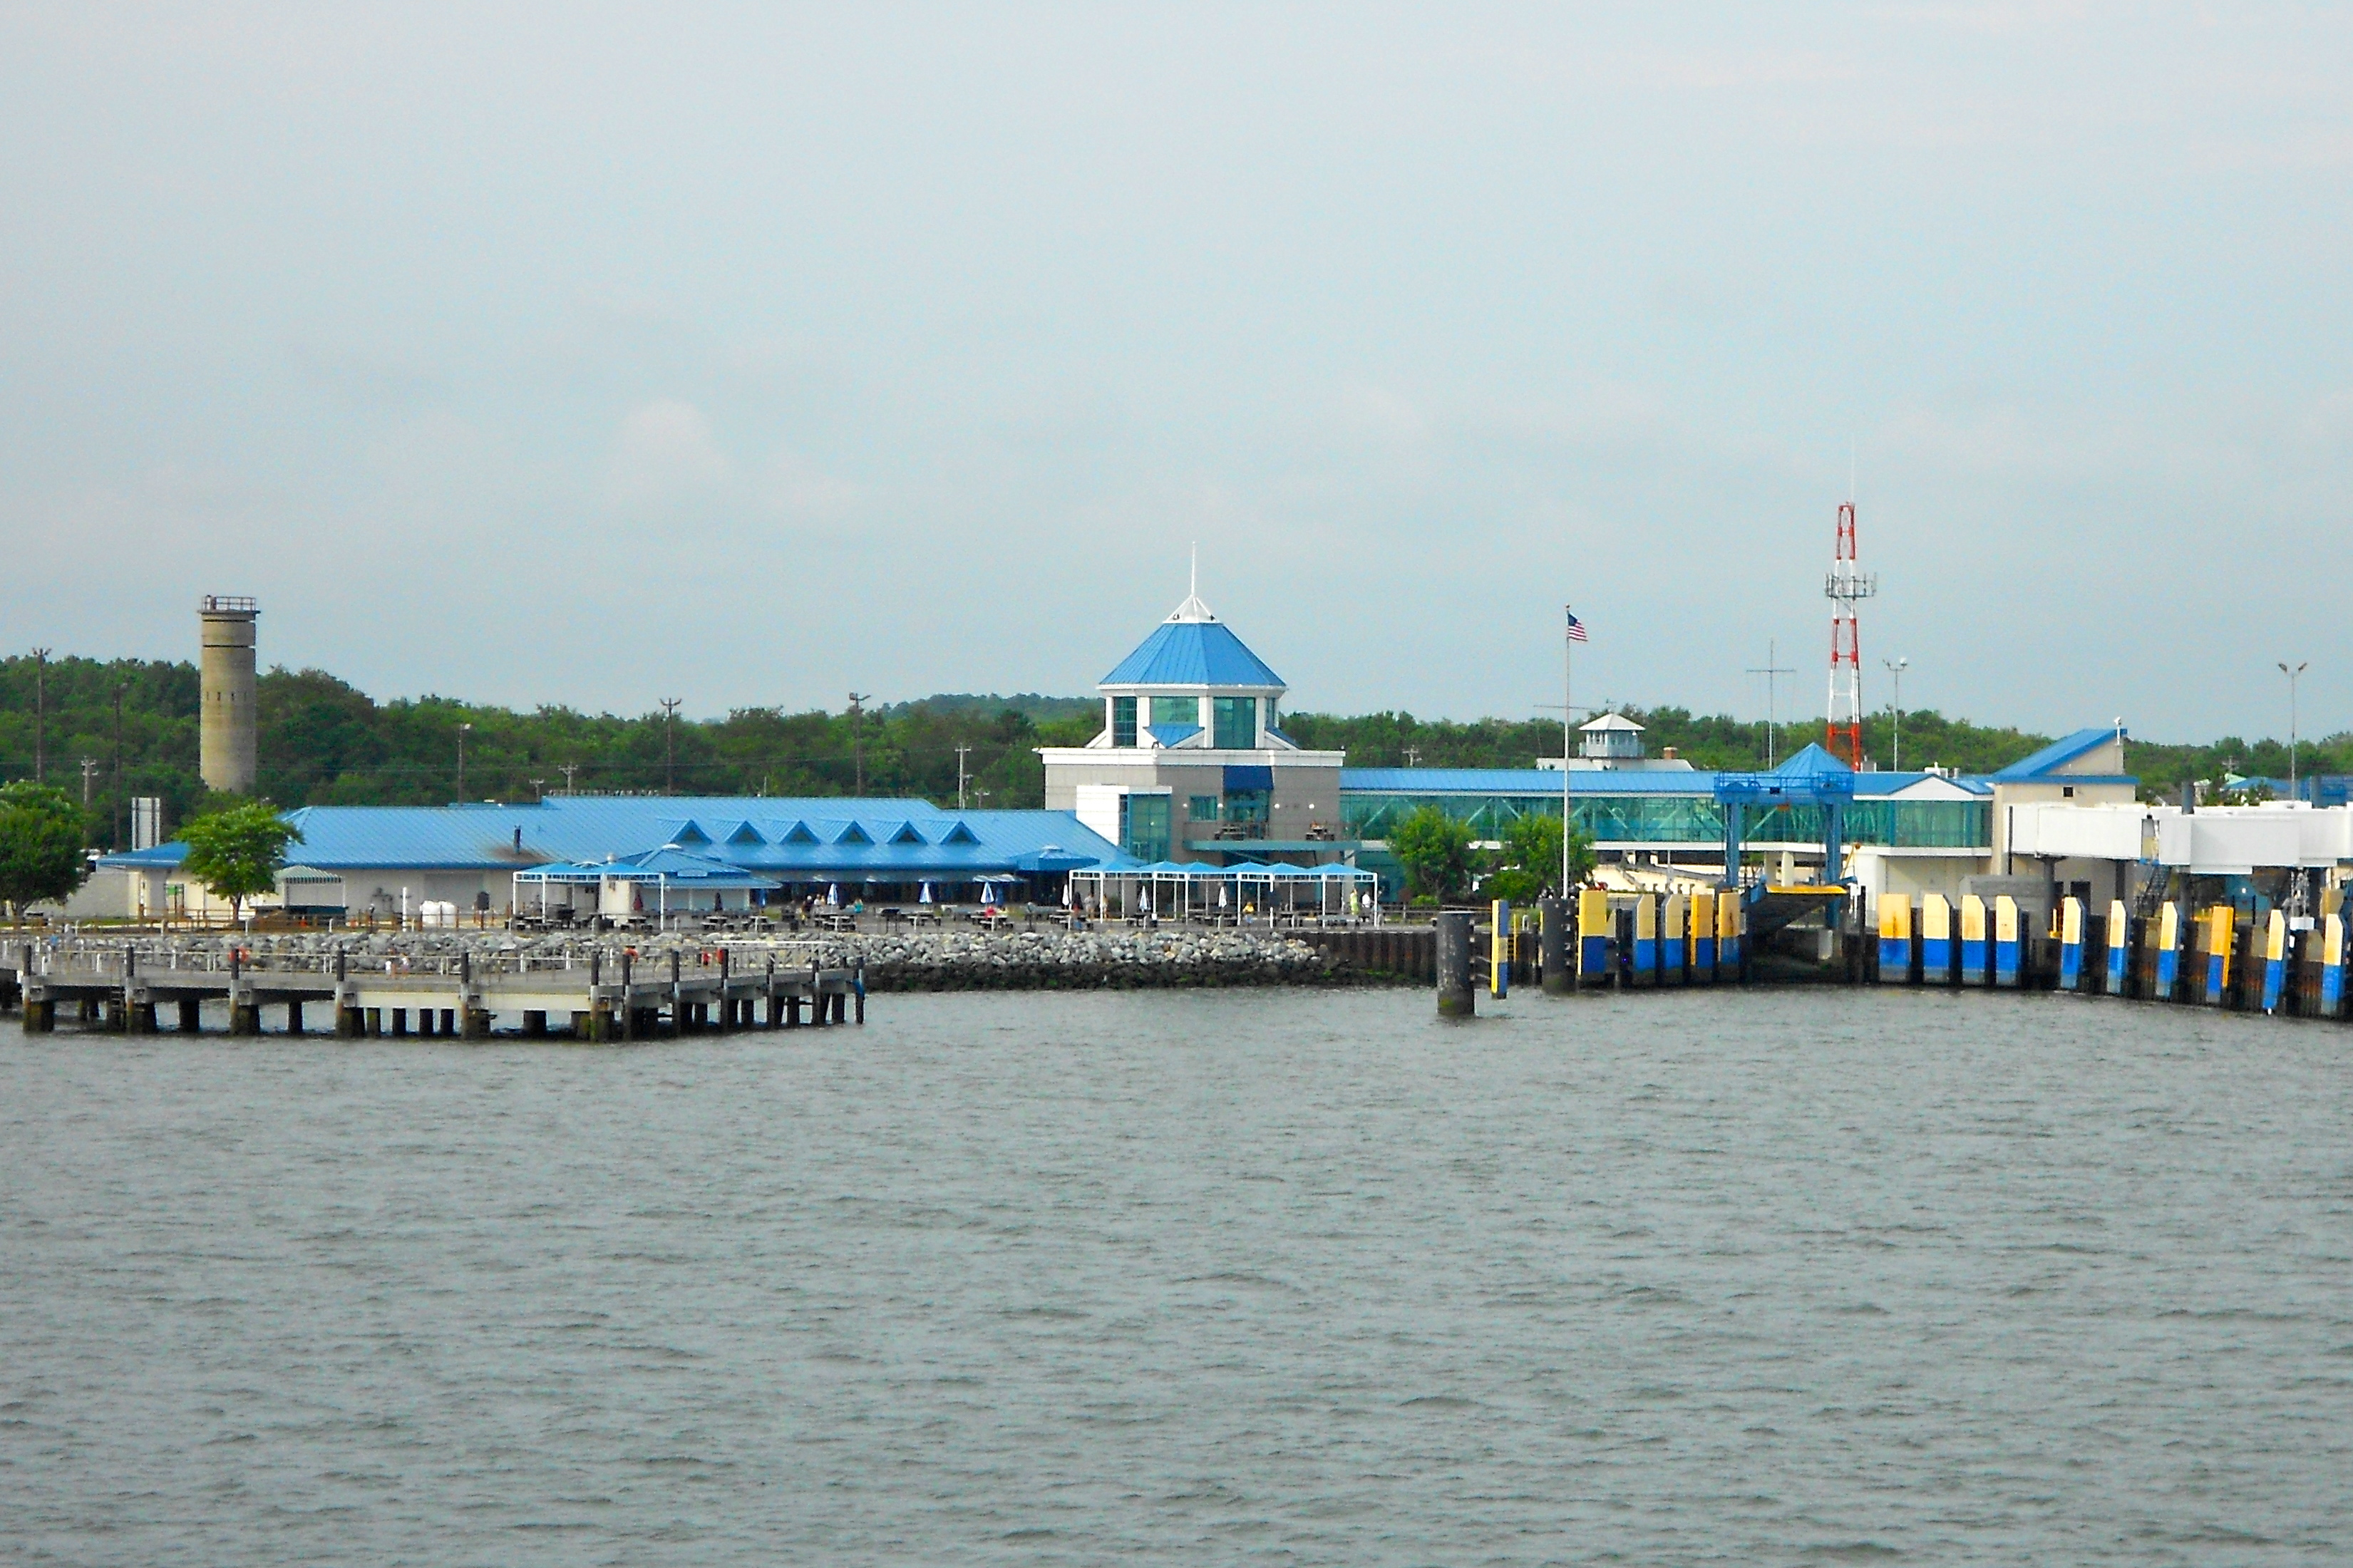 Cape may-lewes ferry discount coupons